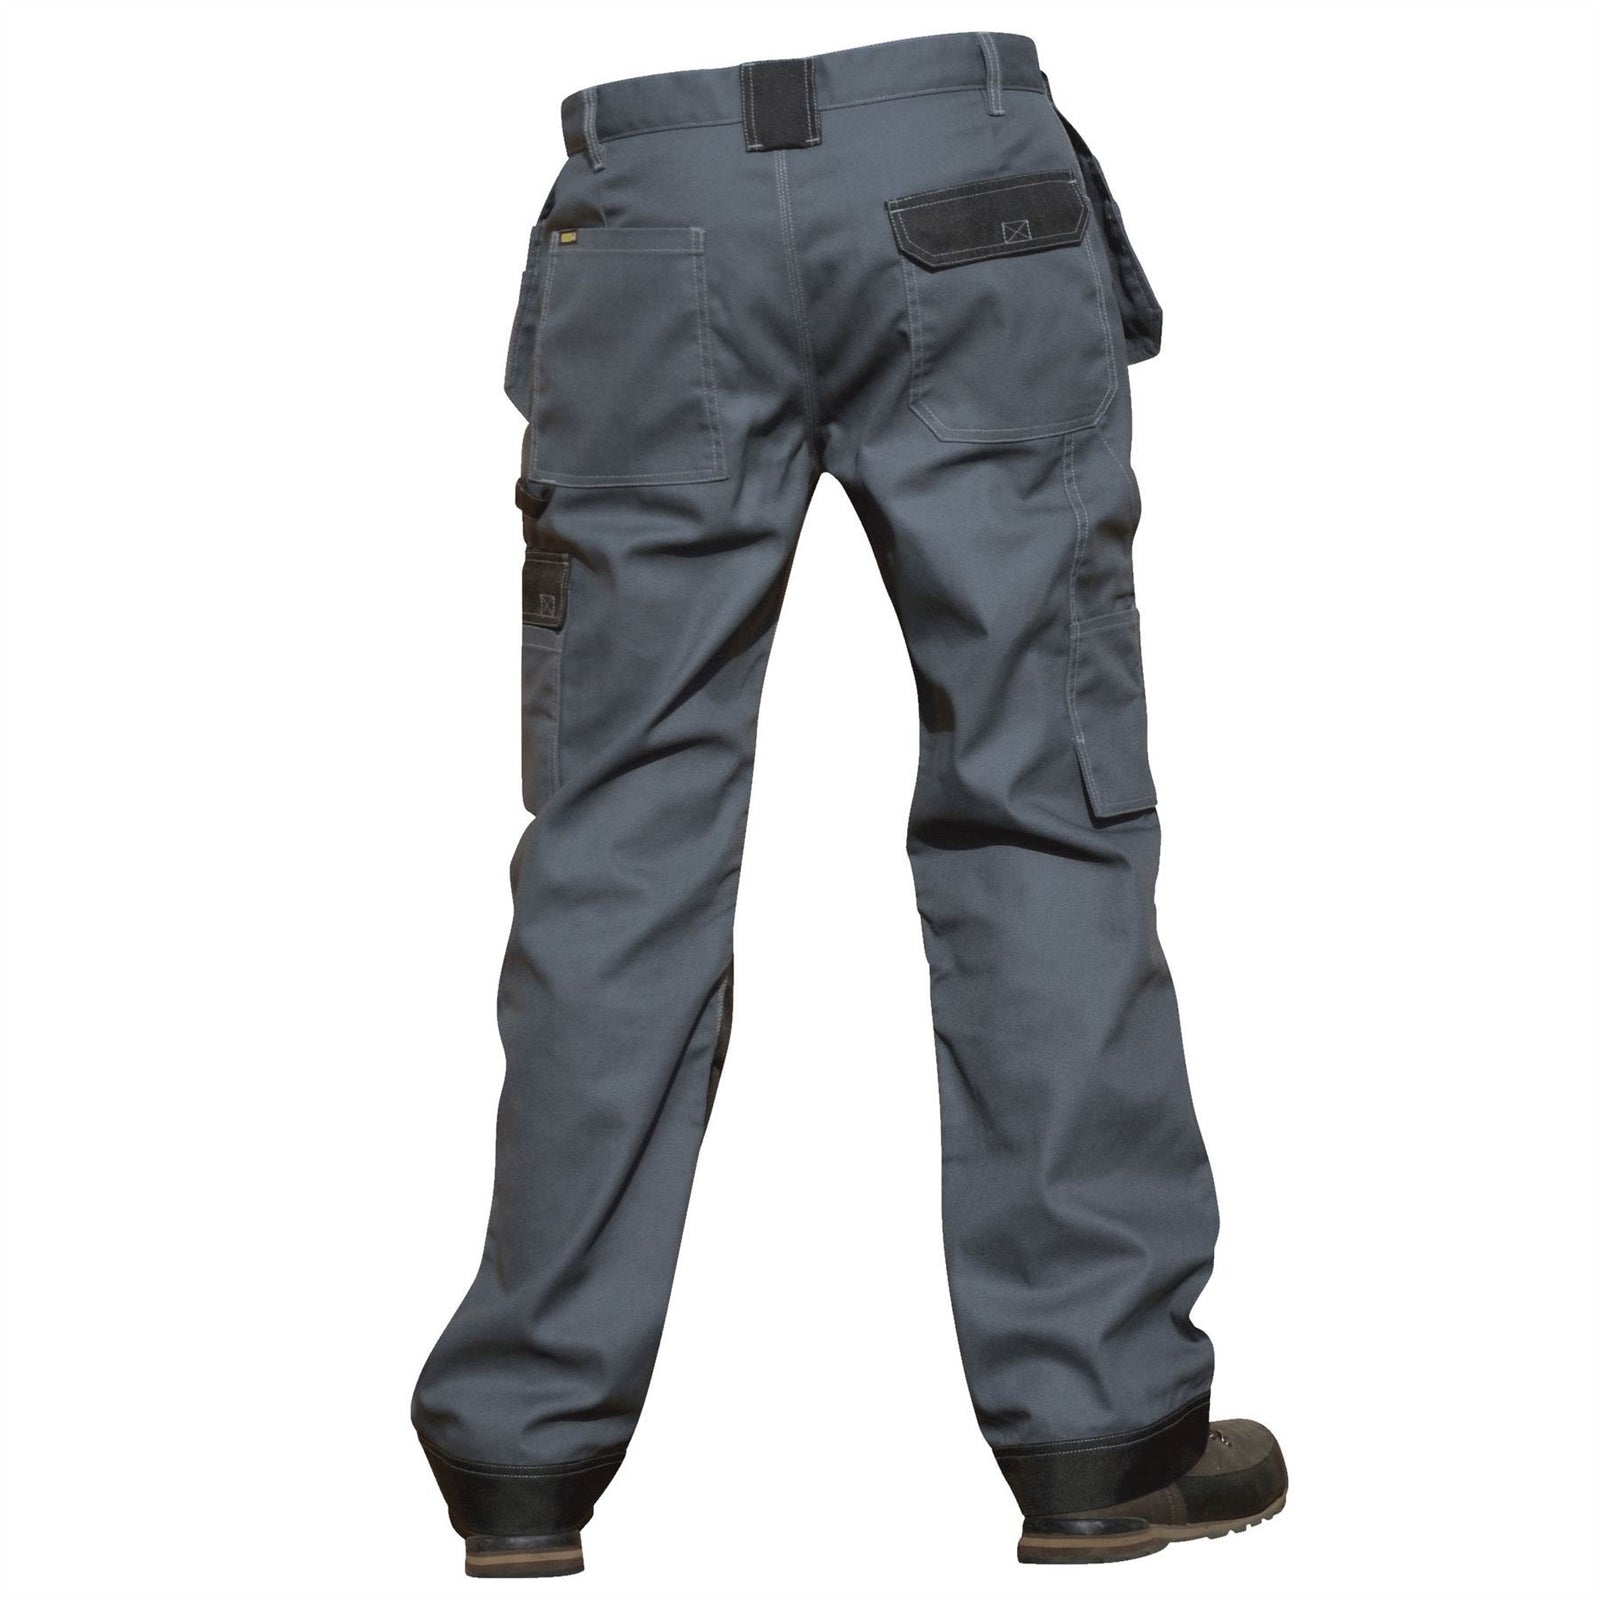 Reid Workwear Regular Leg Heavy Duty Triple Stitched Tough Work Cargo Trousers with Knee Pad Pockets - reid outdoors